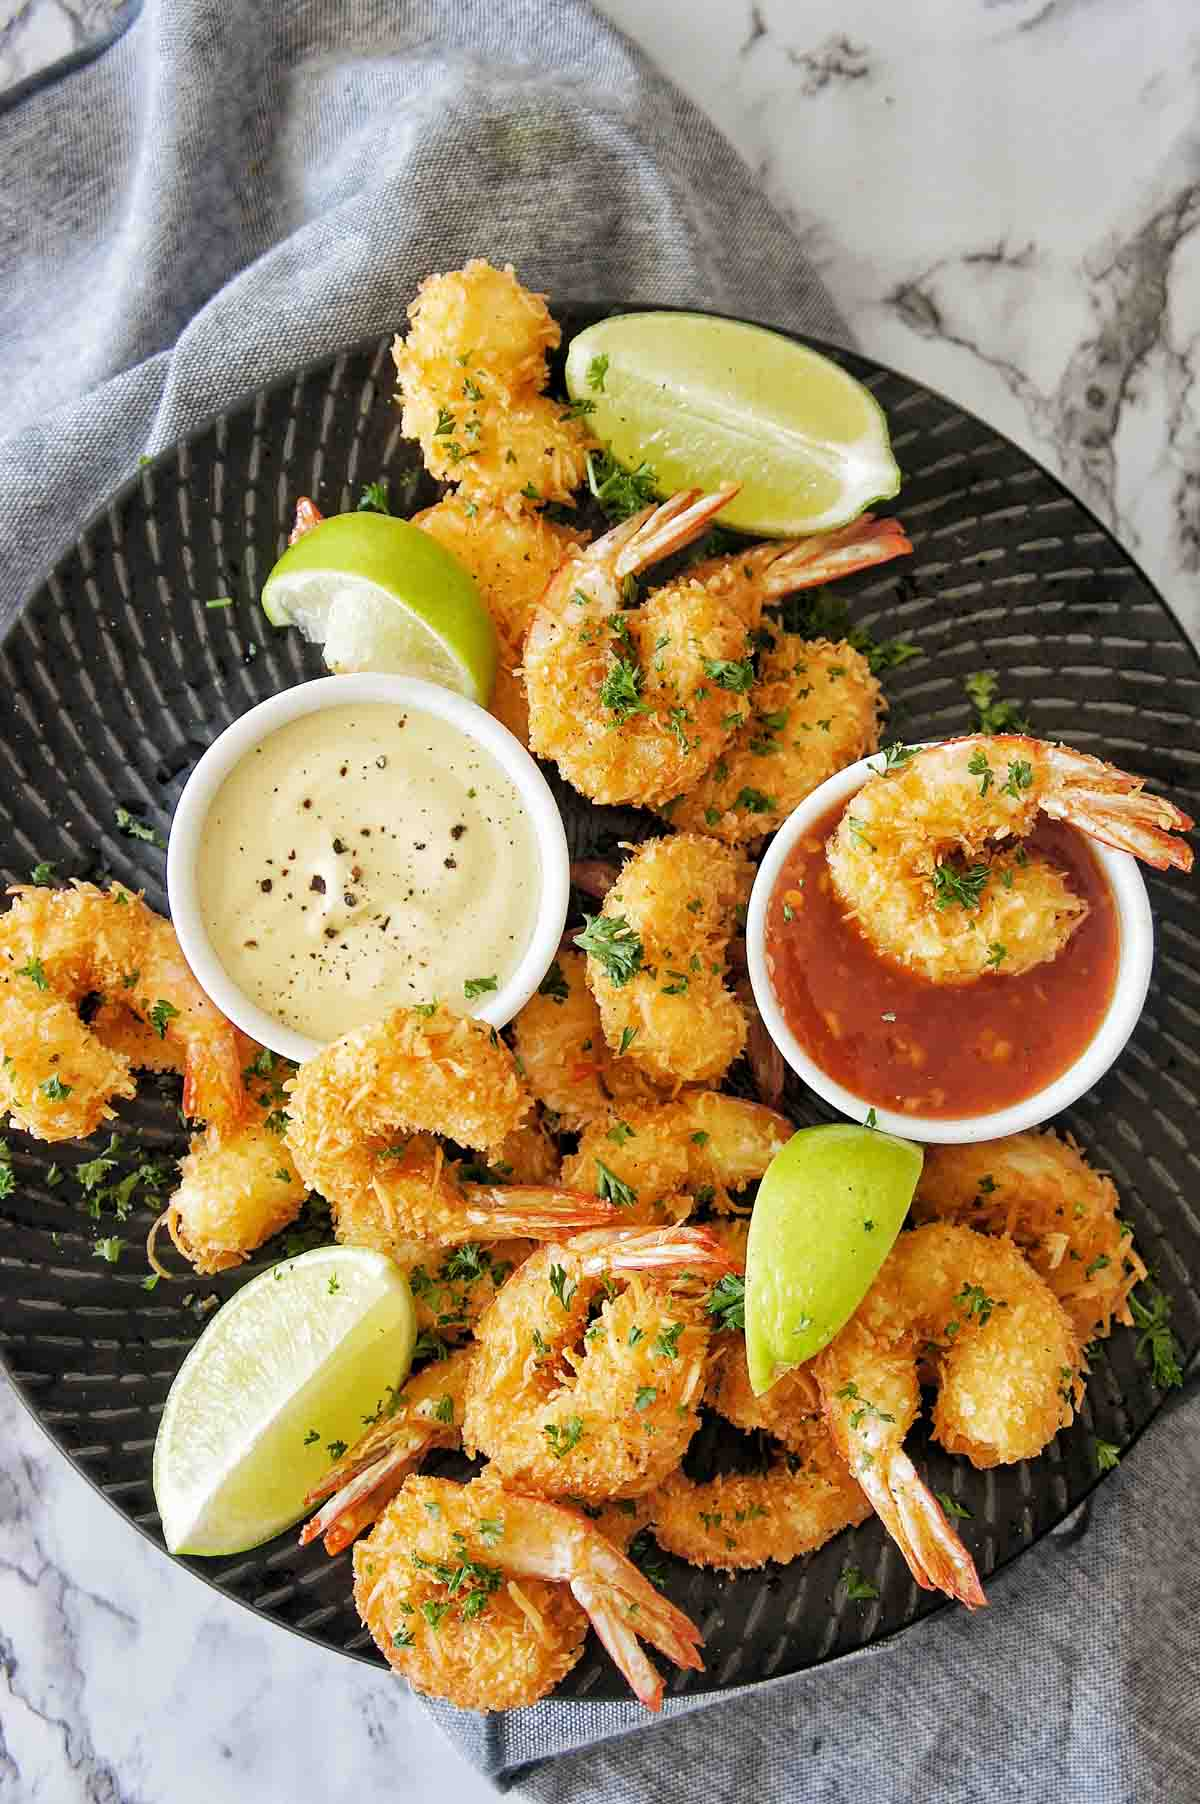 Coconut Prawns on black plate with 2 small bowls of dipping sauce